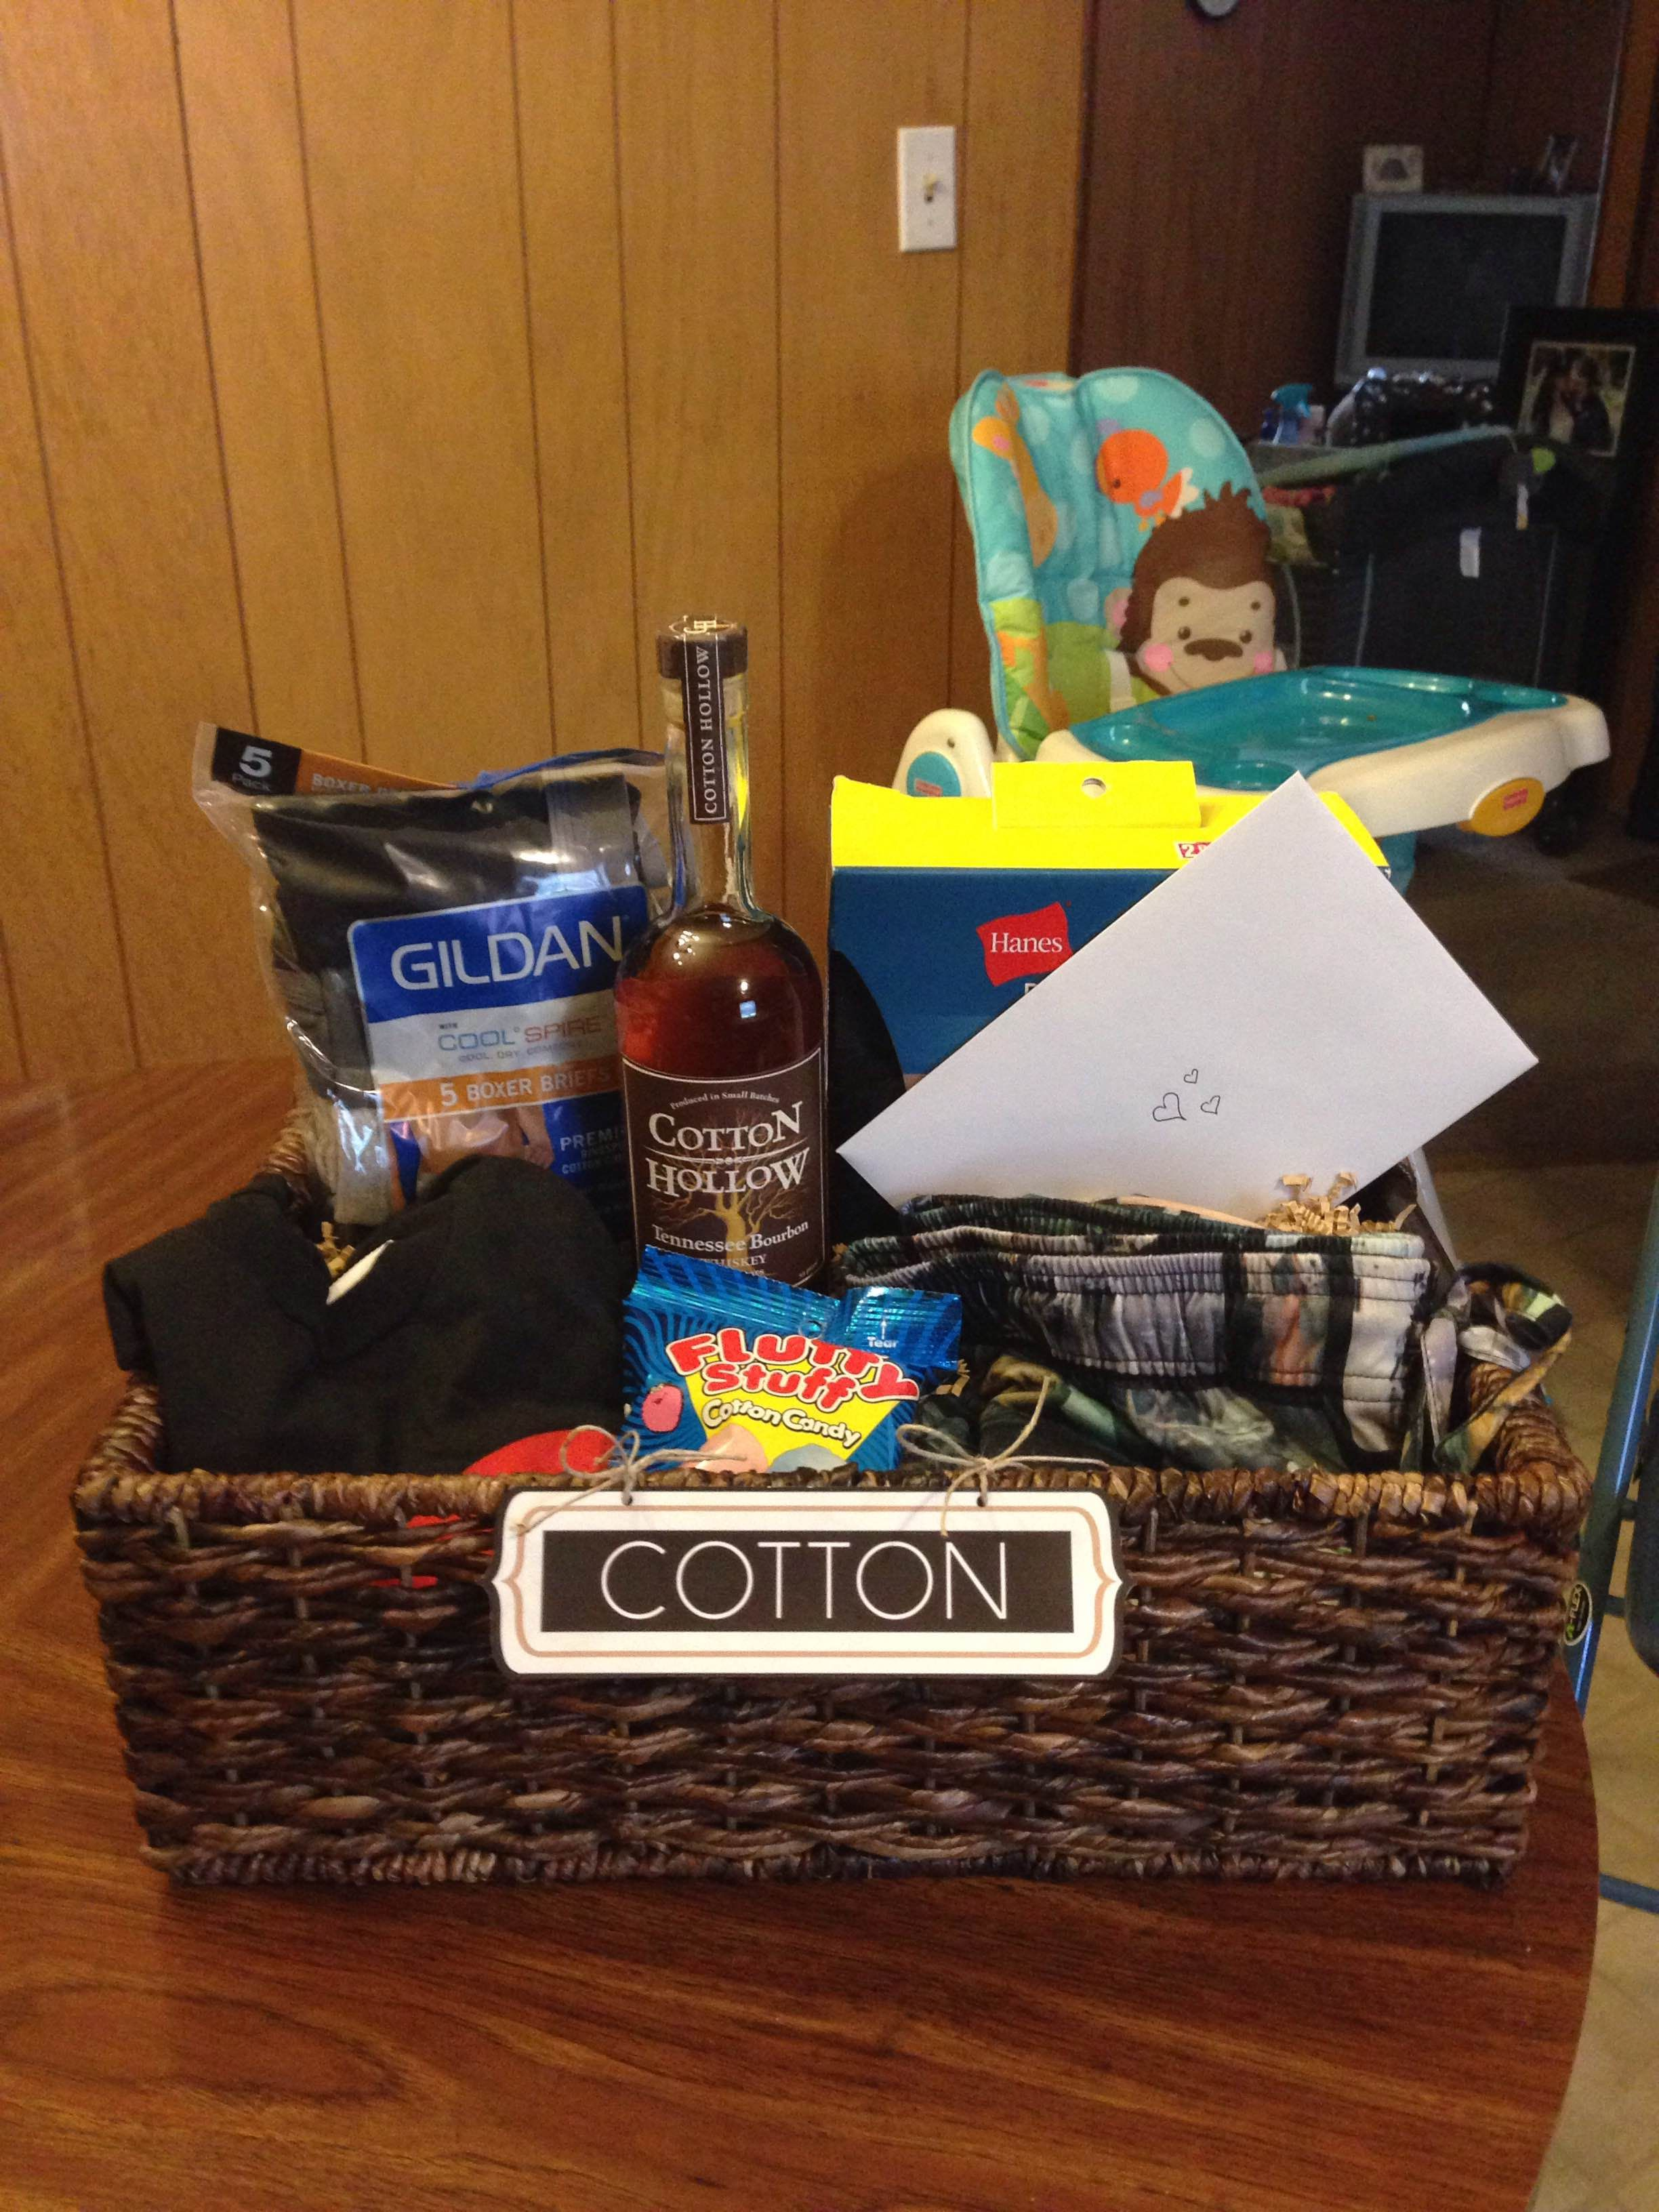 Cotton Gift Basket I Put Together For My Husband Our Second Wedding Anniversary Gifts Hanes X Temp Crew Shirts Cool Spire Boxer